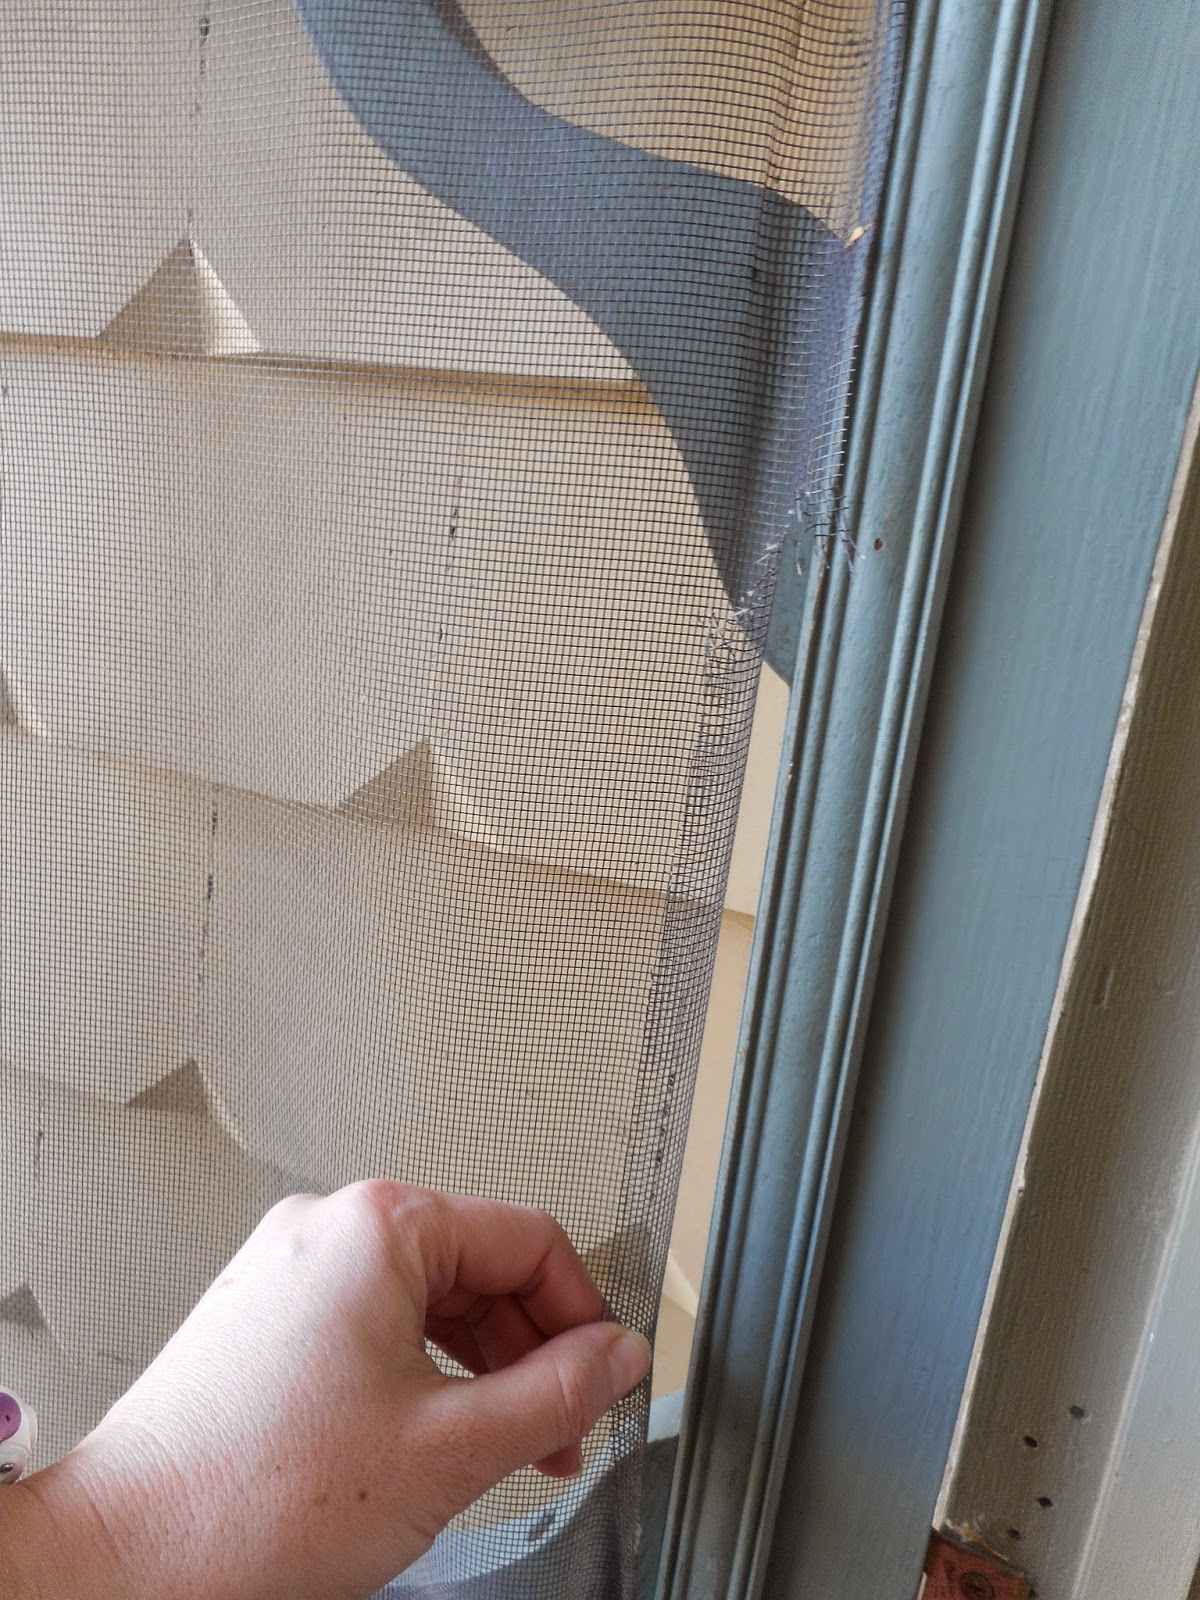 This Little Yellow House : Fixing the fly screen door